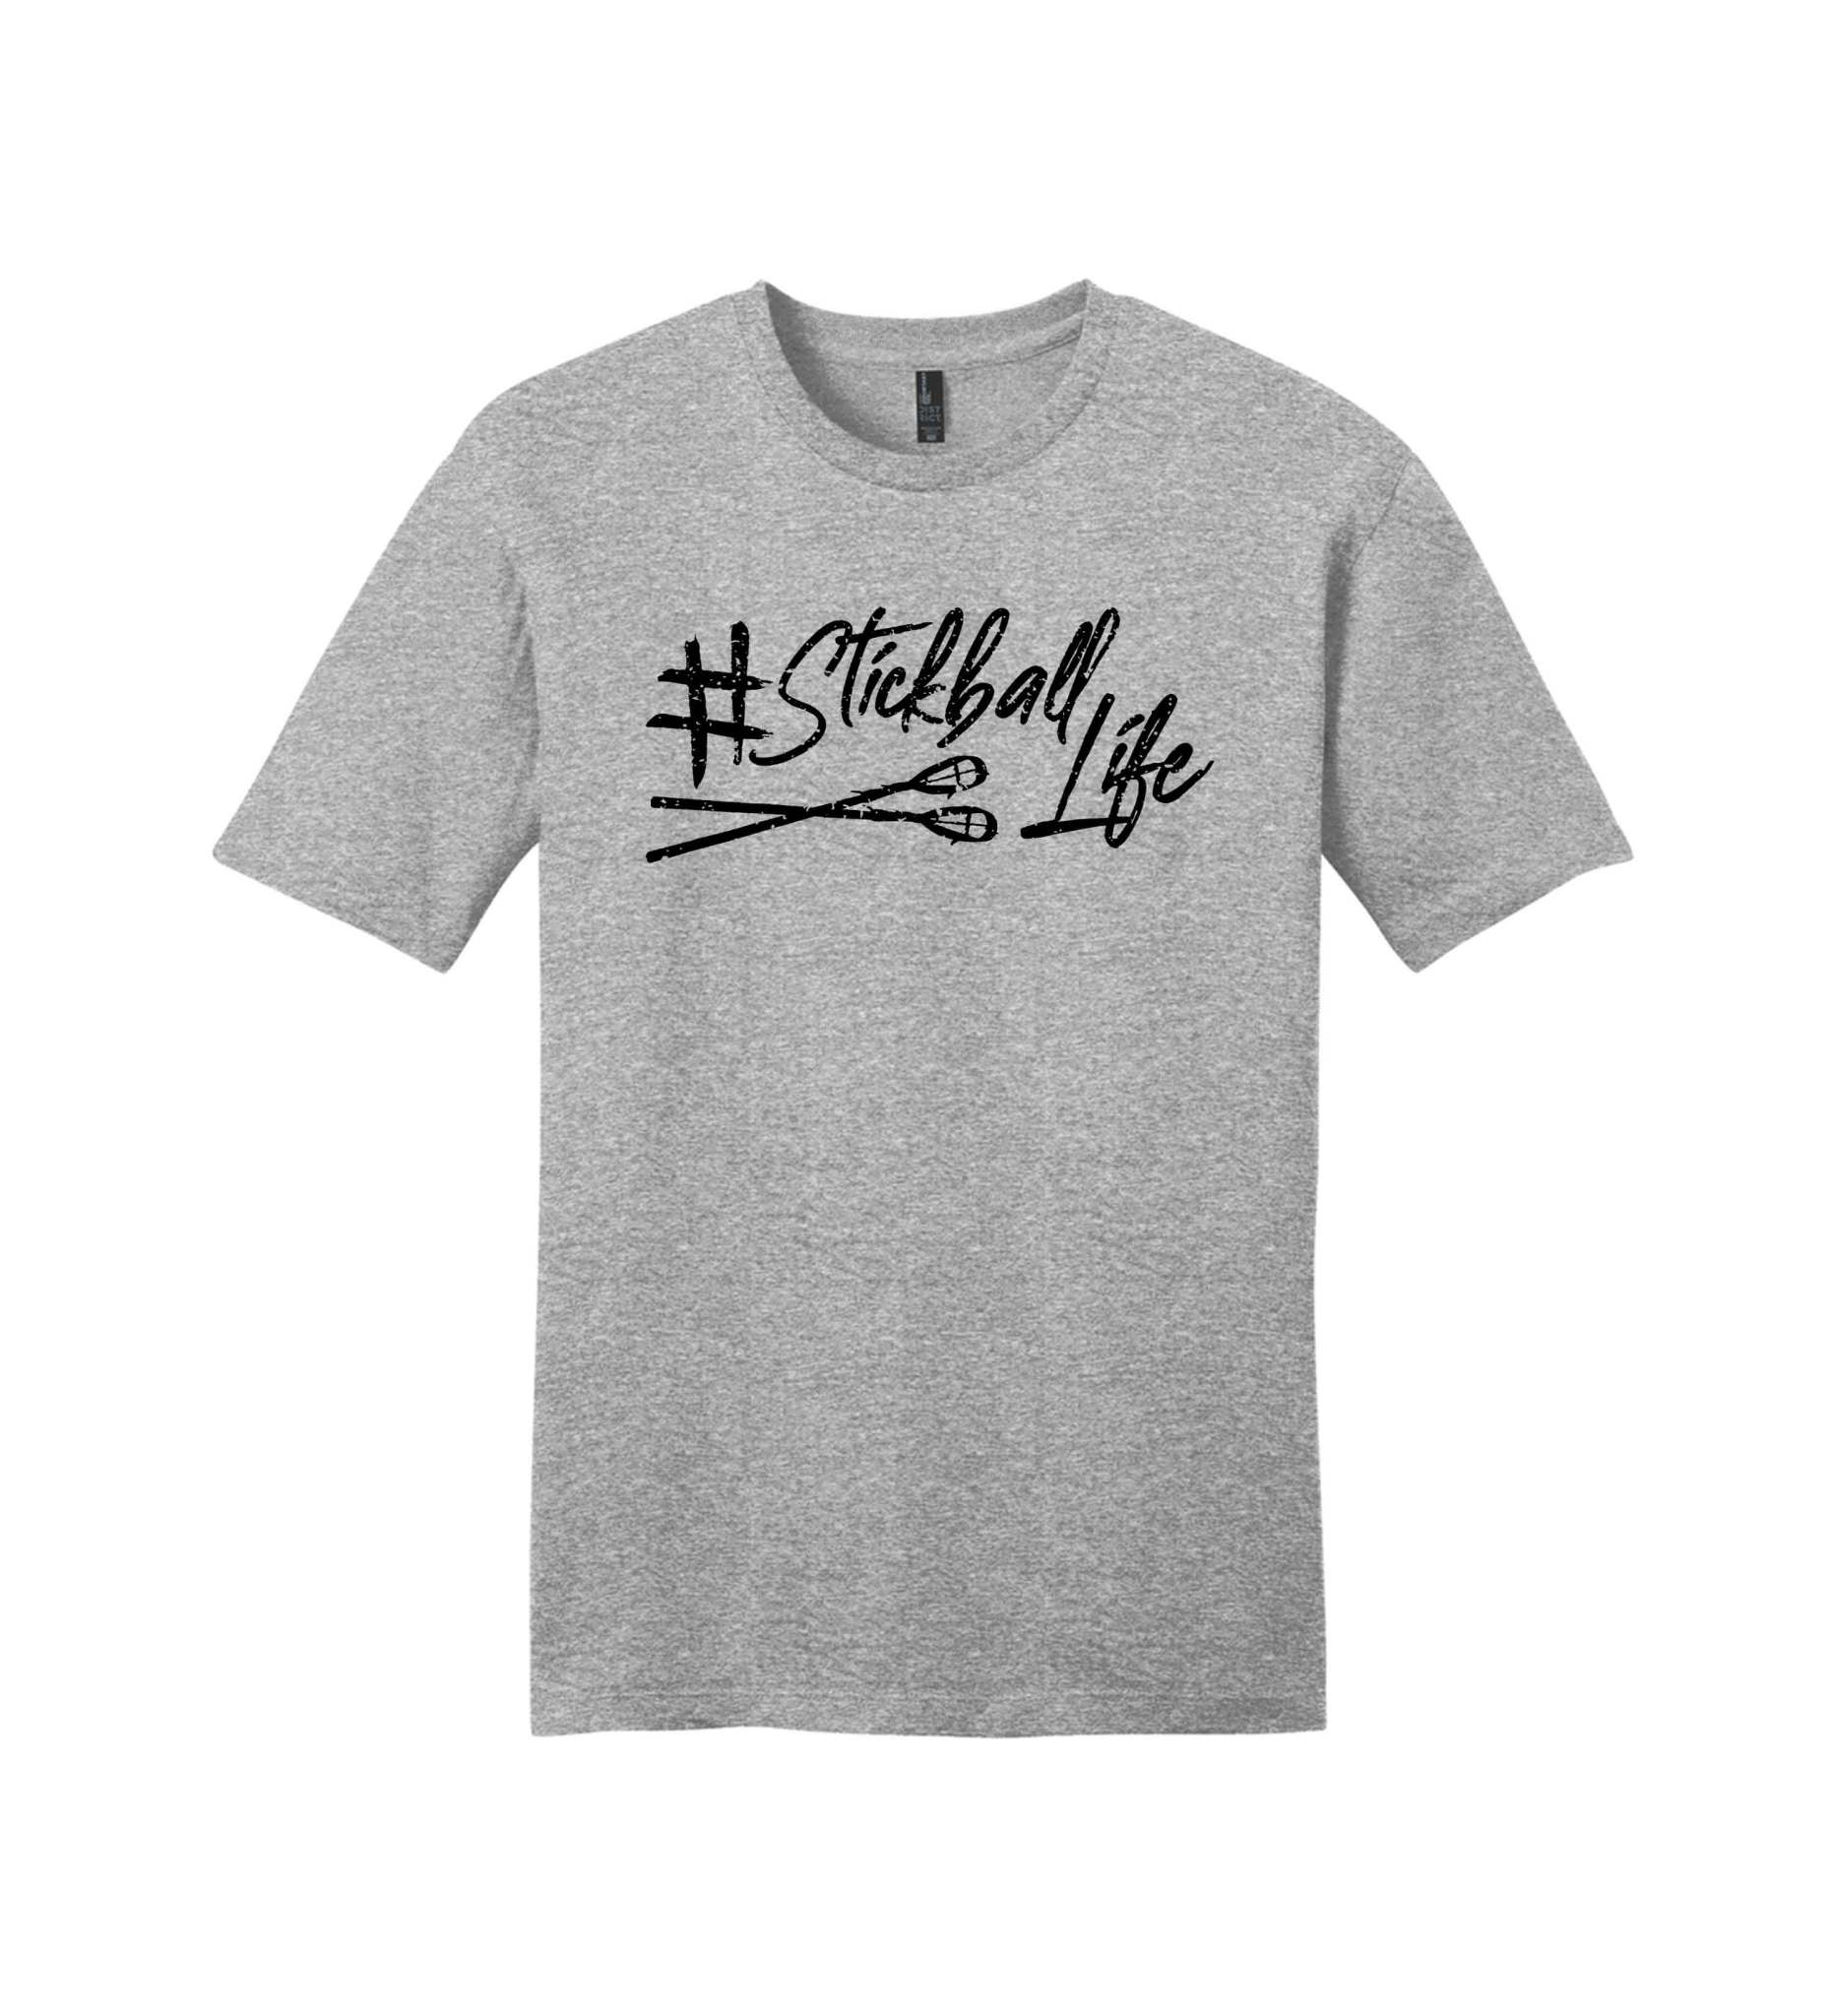 STICKBALL LIFE TEE GREY